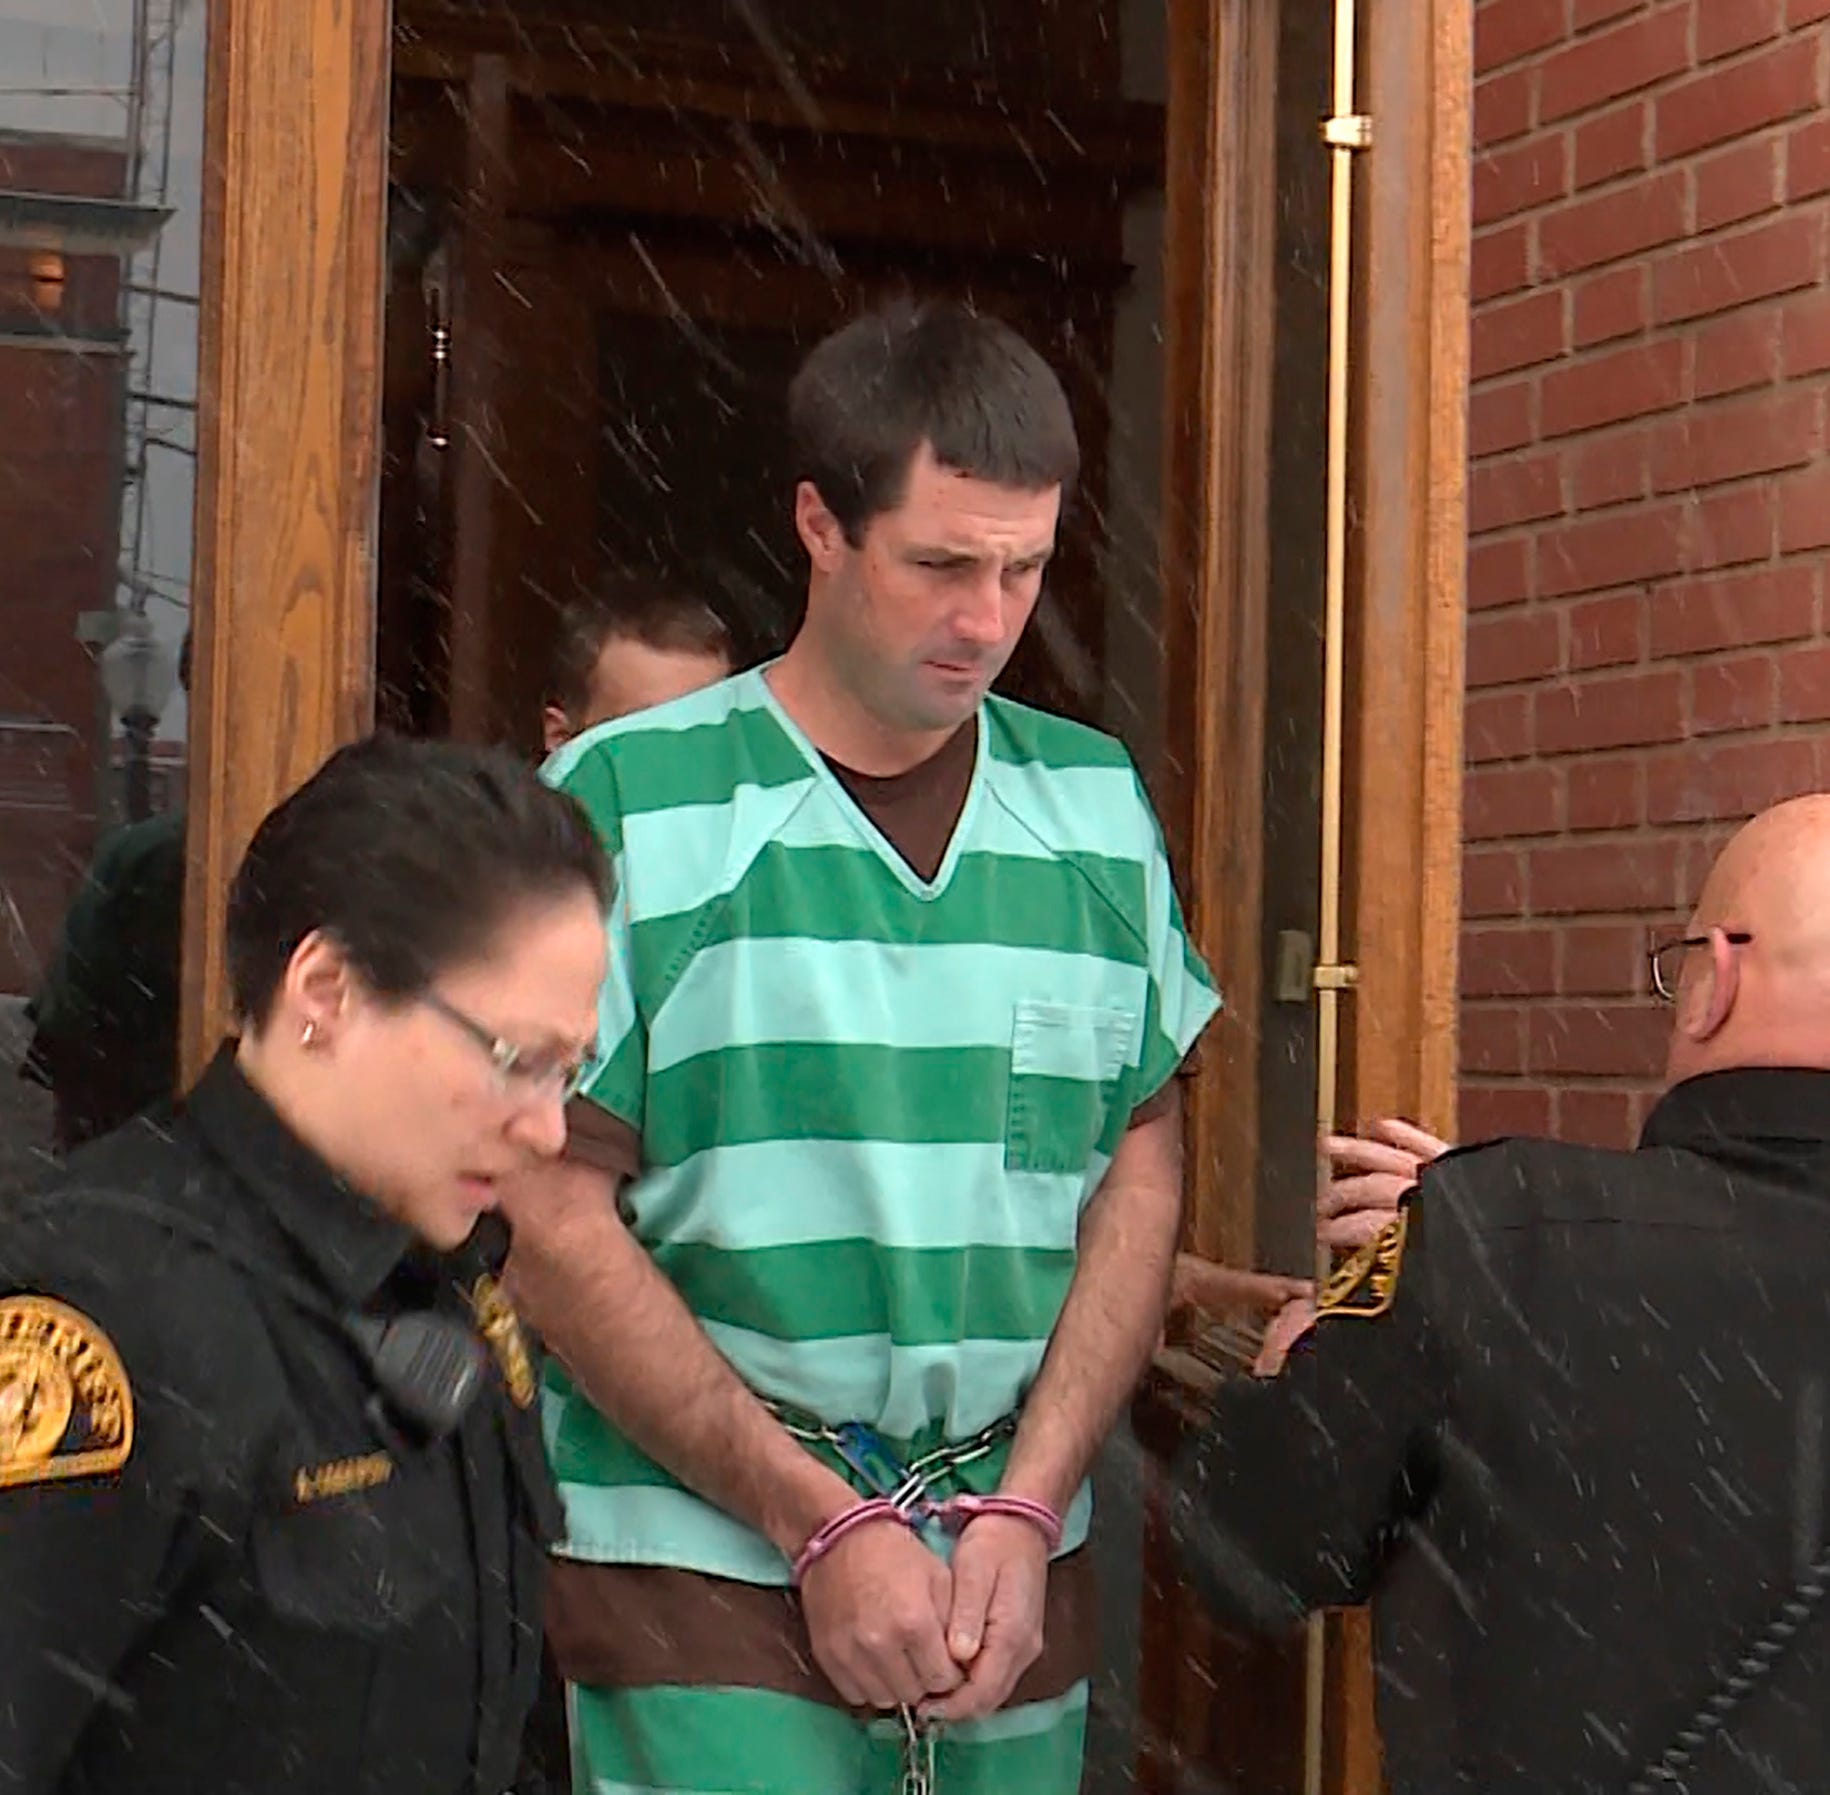 Patrick Frazee pleads not guilty in death of child's mother, Kelsey Berreth